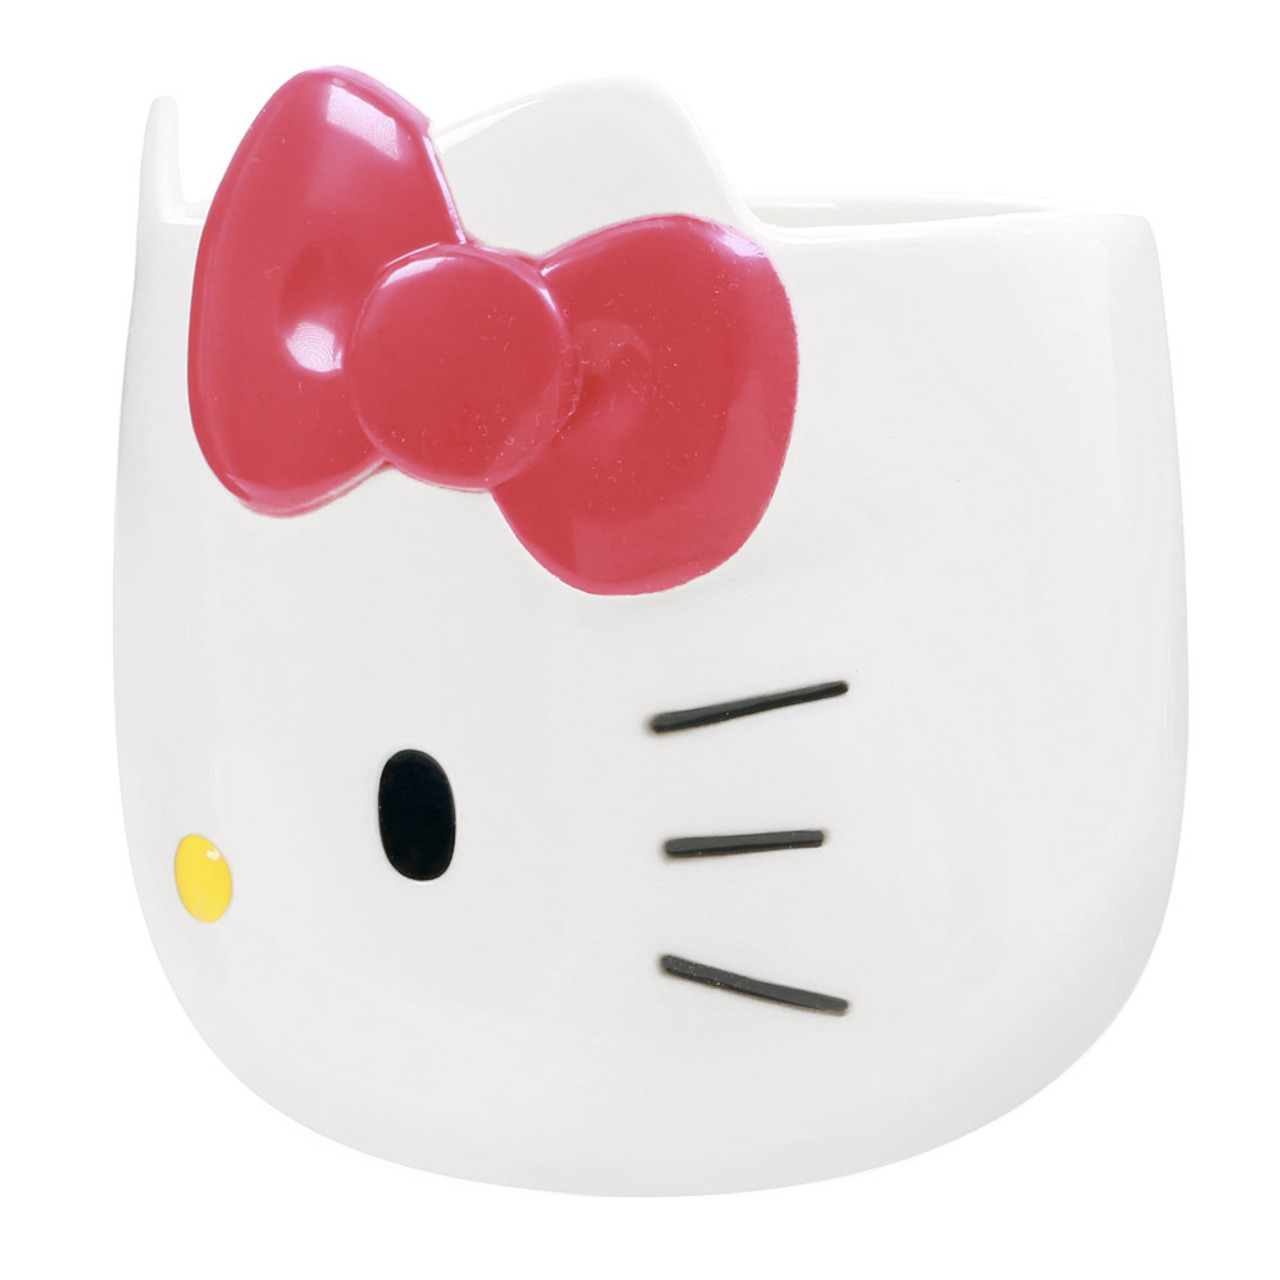 Sanrio Hello Kitty ABS Plastic Cup ( Side View )